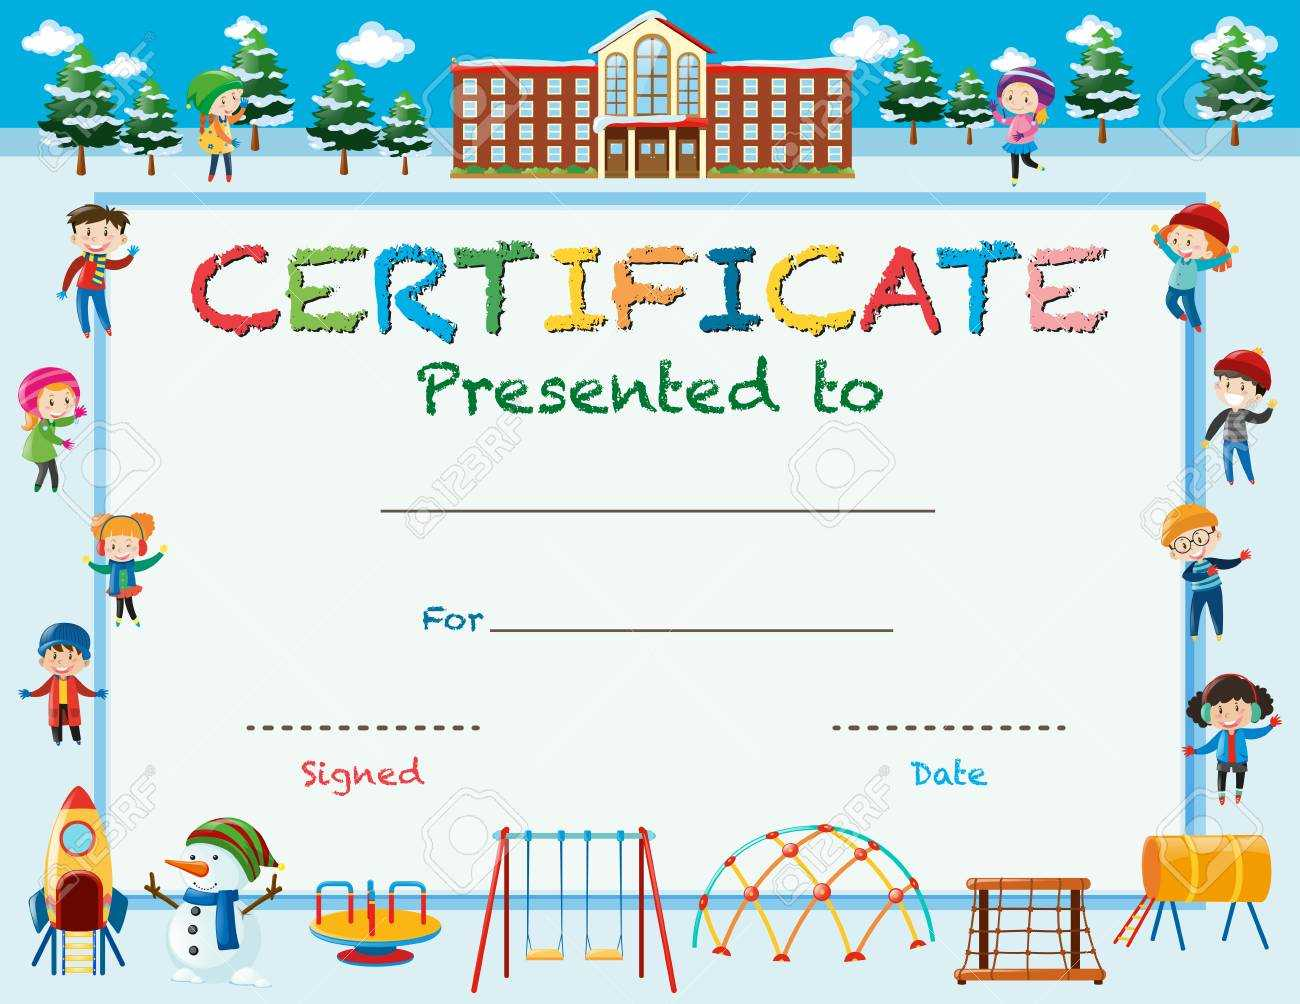 Certificate Template With Kids In Winter At School Illustration Pertaining To Free School Certificate Templates